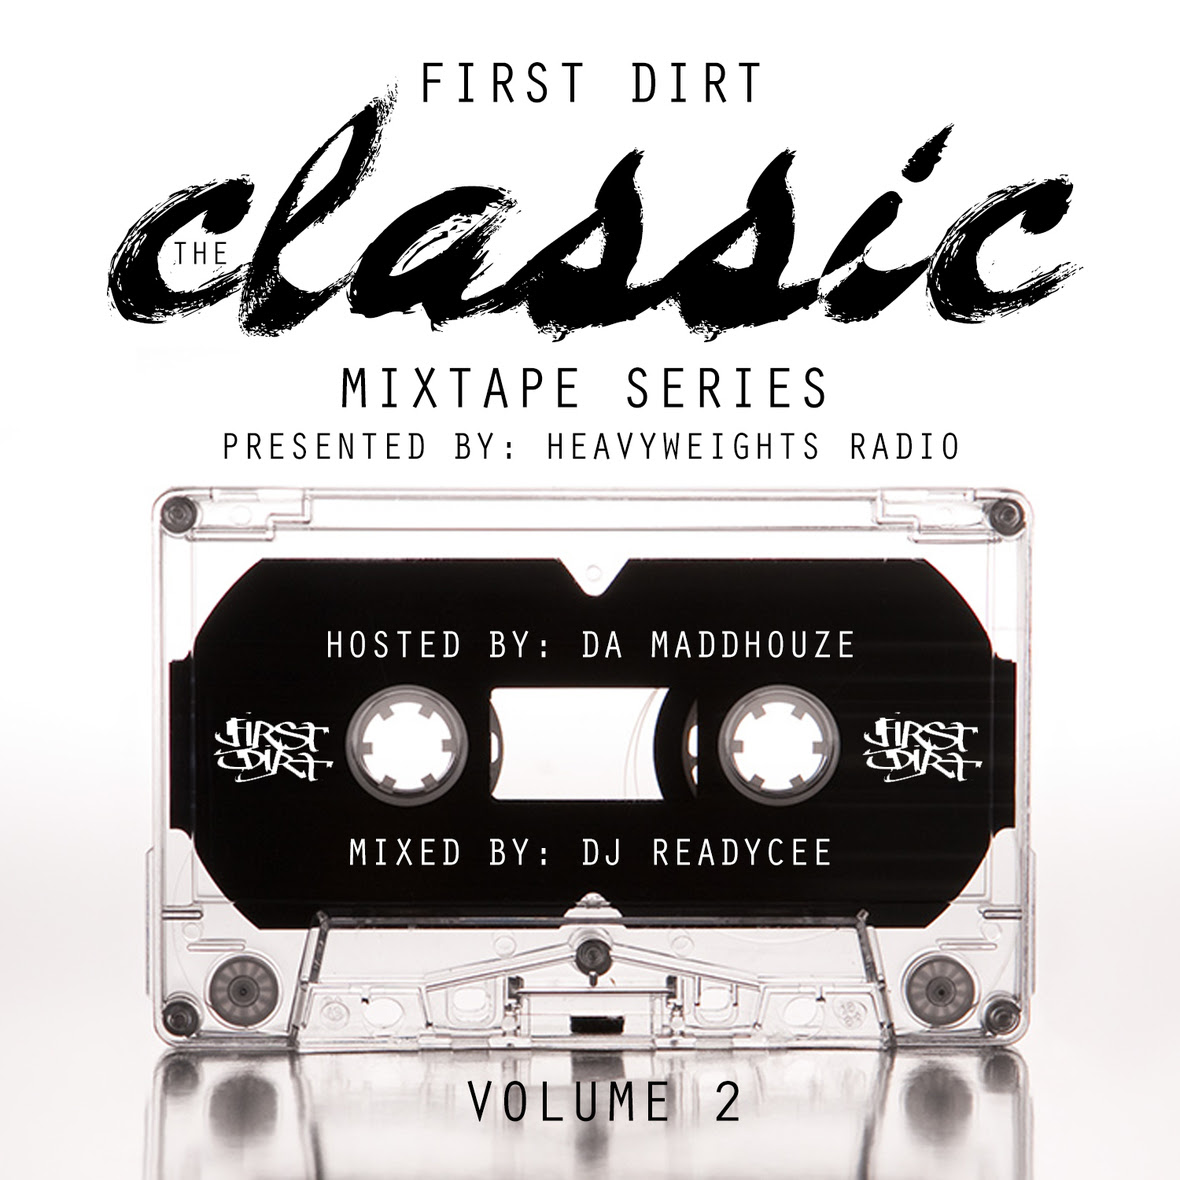 First Dirt Classic Mixtape Series Vol 2 Front copy